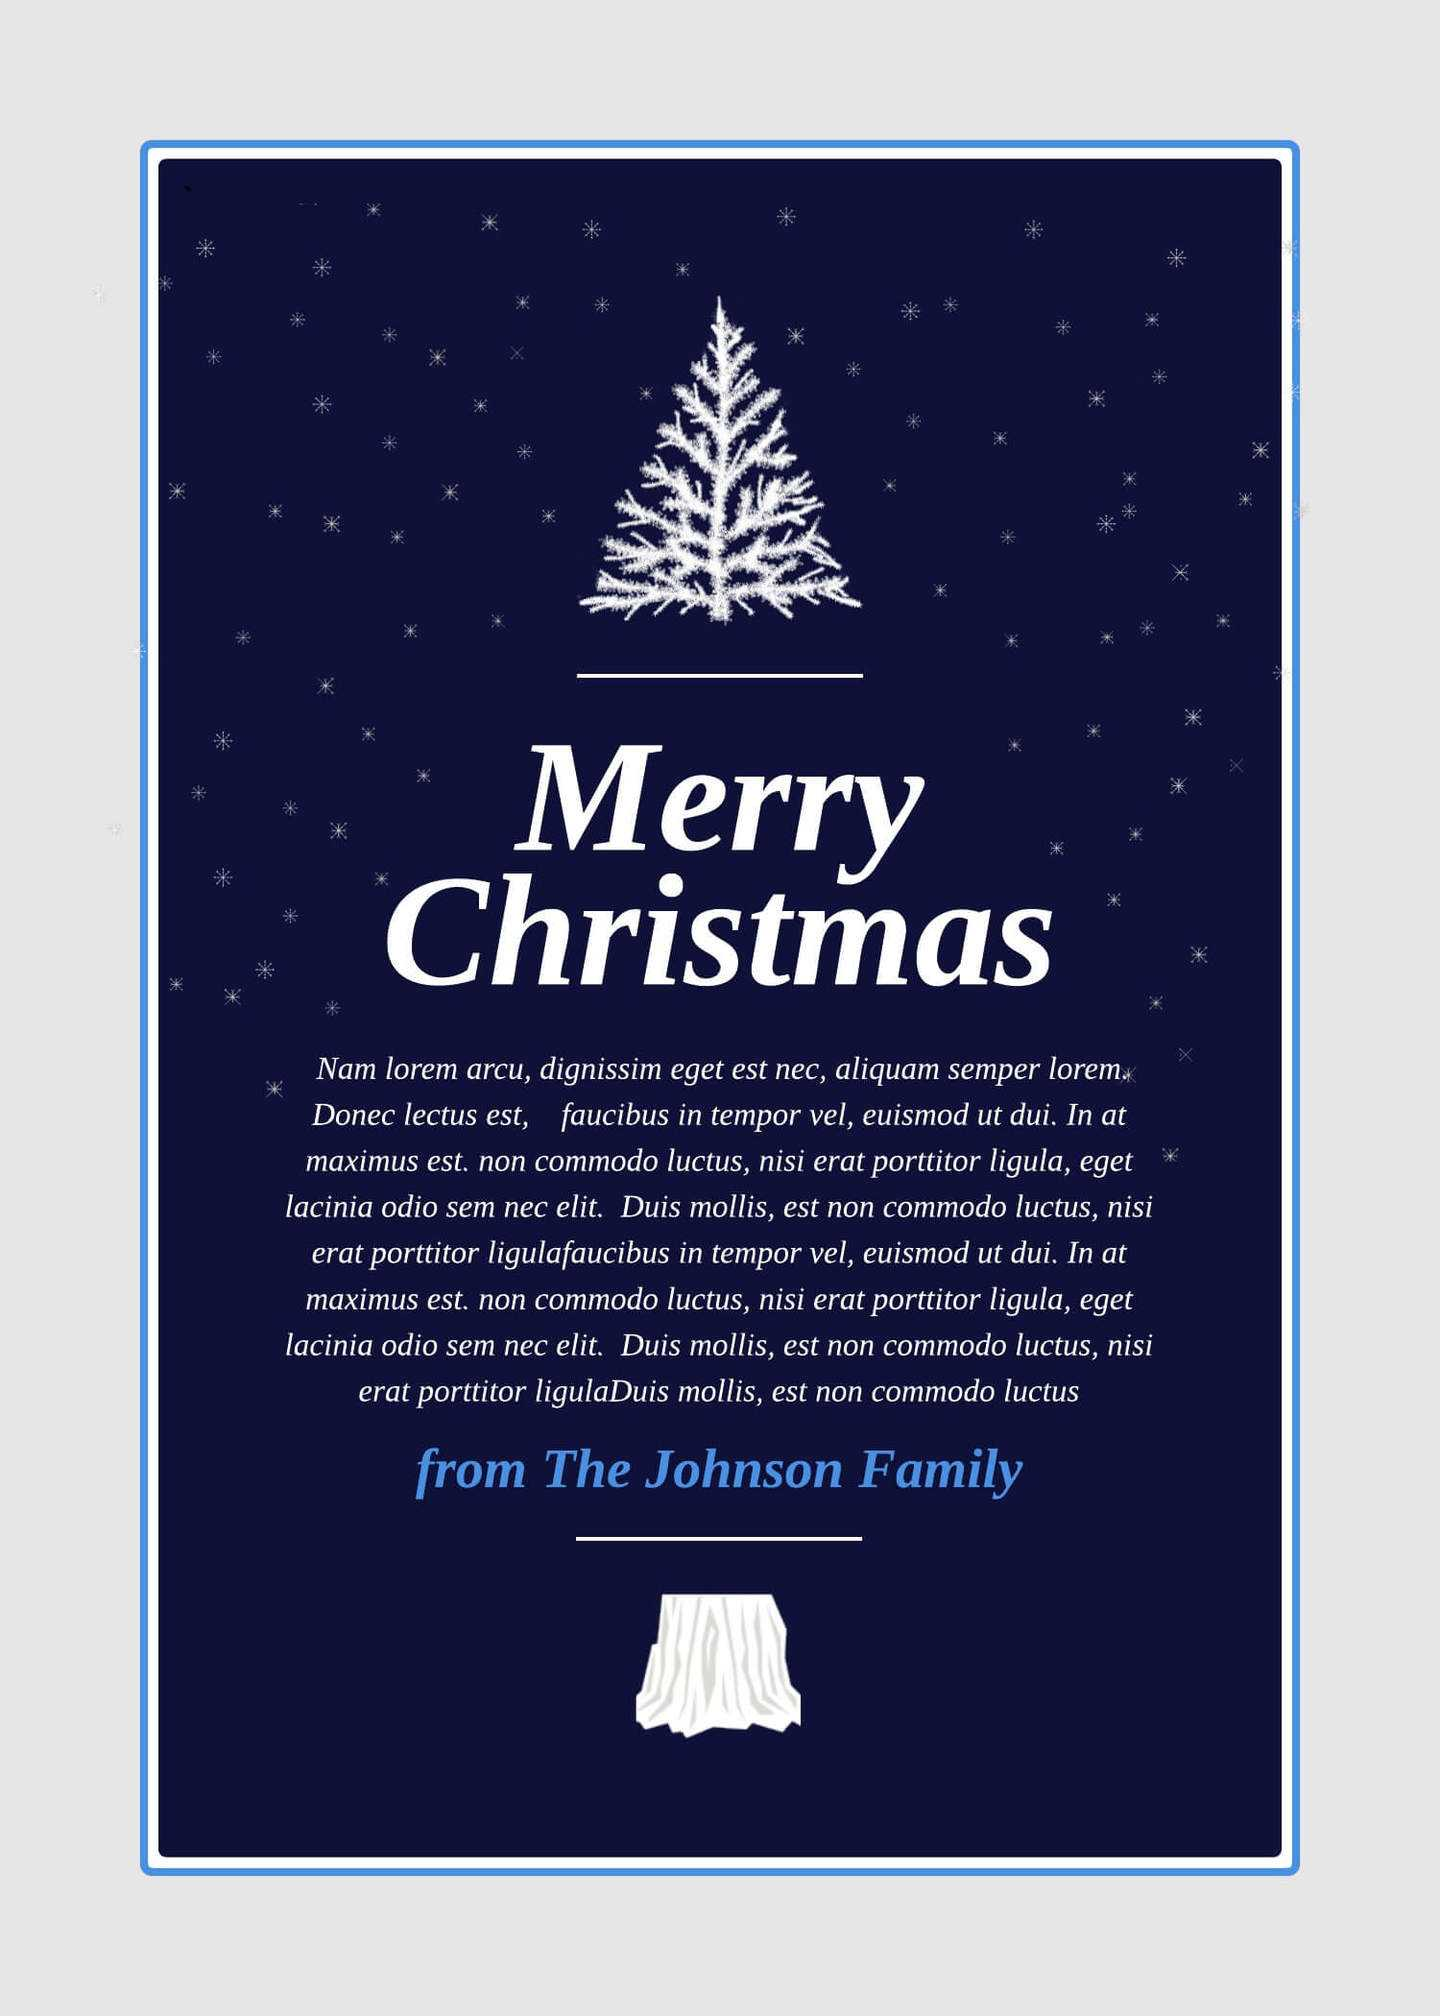 18 Free Holiday Templates & Examples - Lucidpress for Free Holiday Photo Card Templates